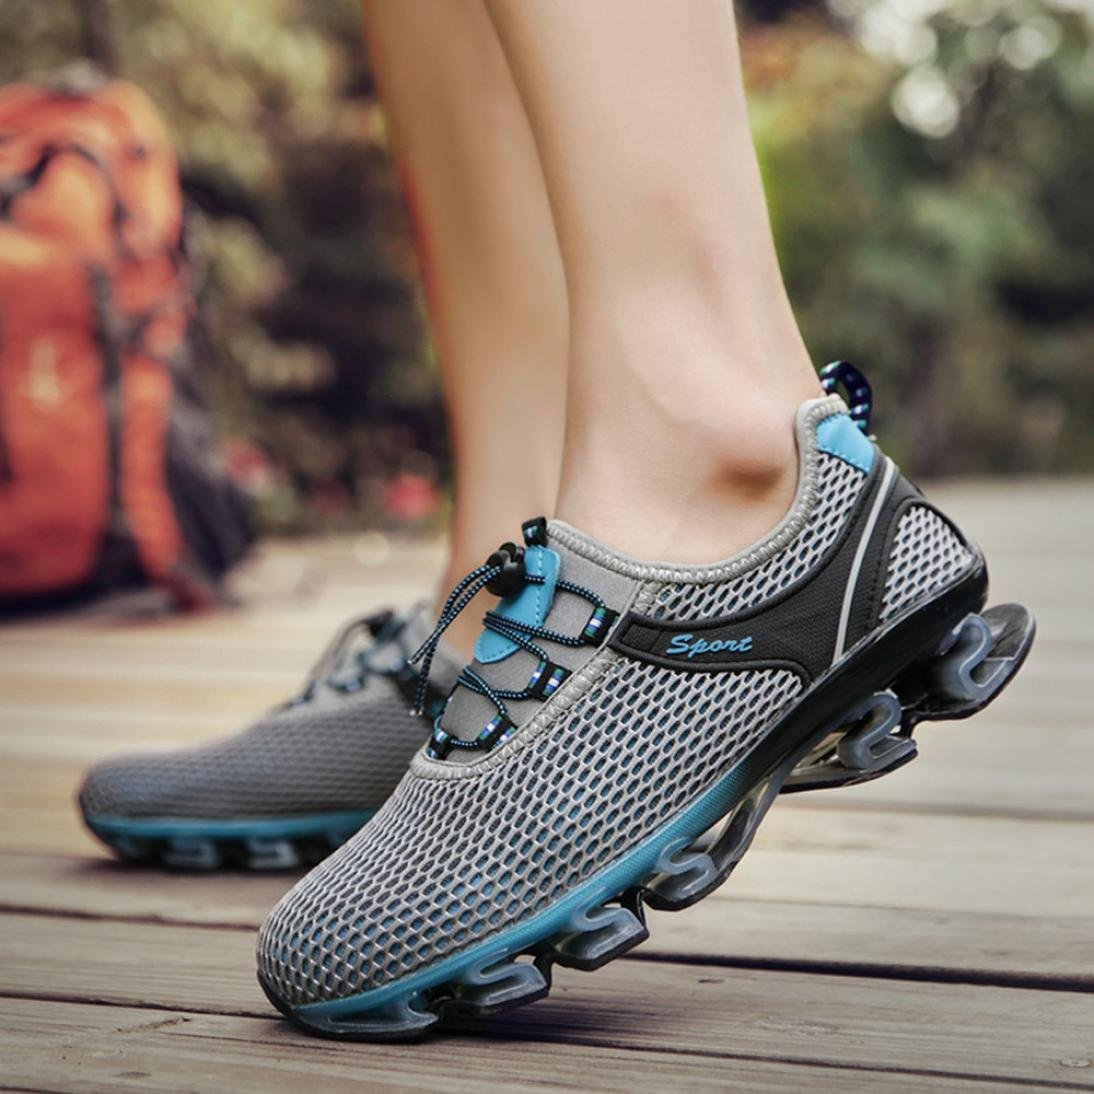 ❤️Men Sneakers, Neartime Hot Sale 2018 Spring/Autumn Fashion Casual Walking Sneaker Slip On Blade Outdoor Mesh Running Sport Shoes by Neartime Sandals